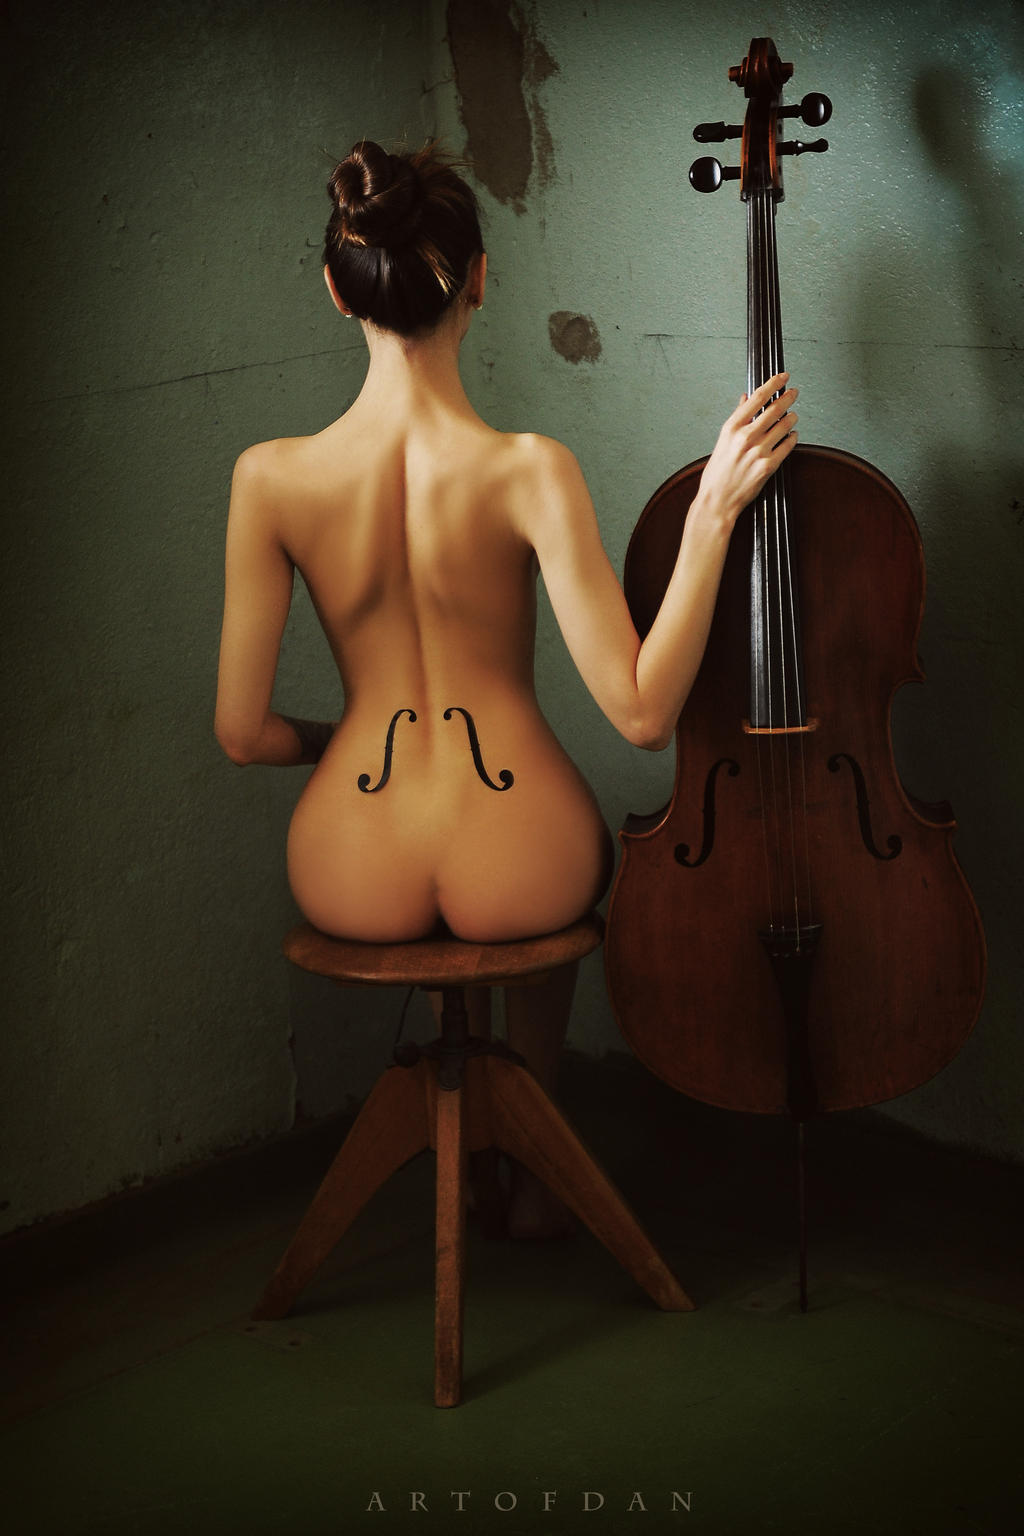 signs_of_cello_by_artofdanphotography_d9